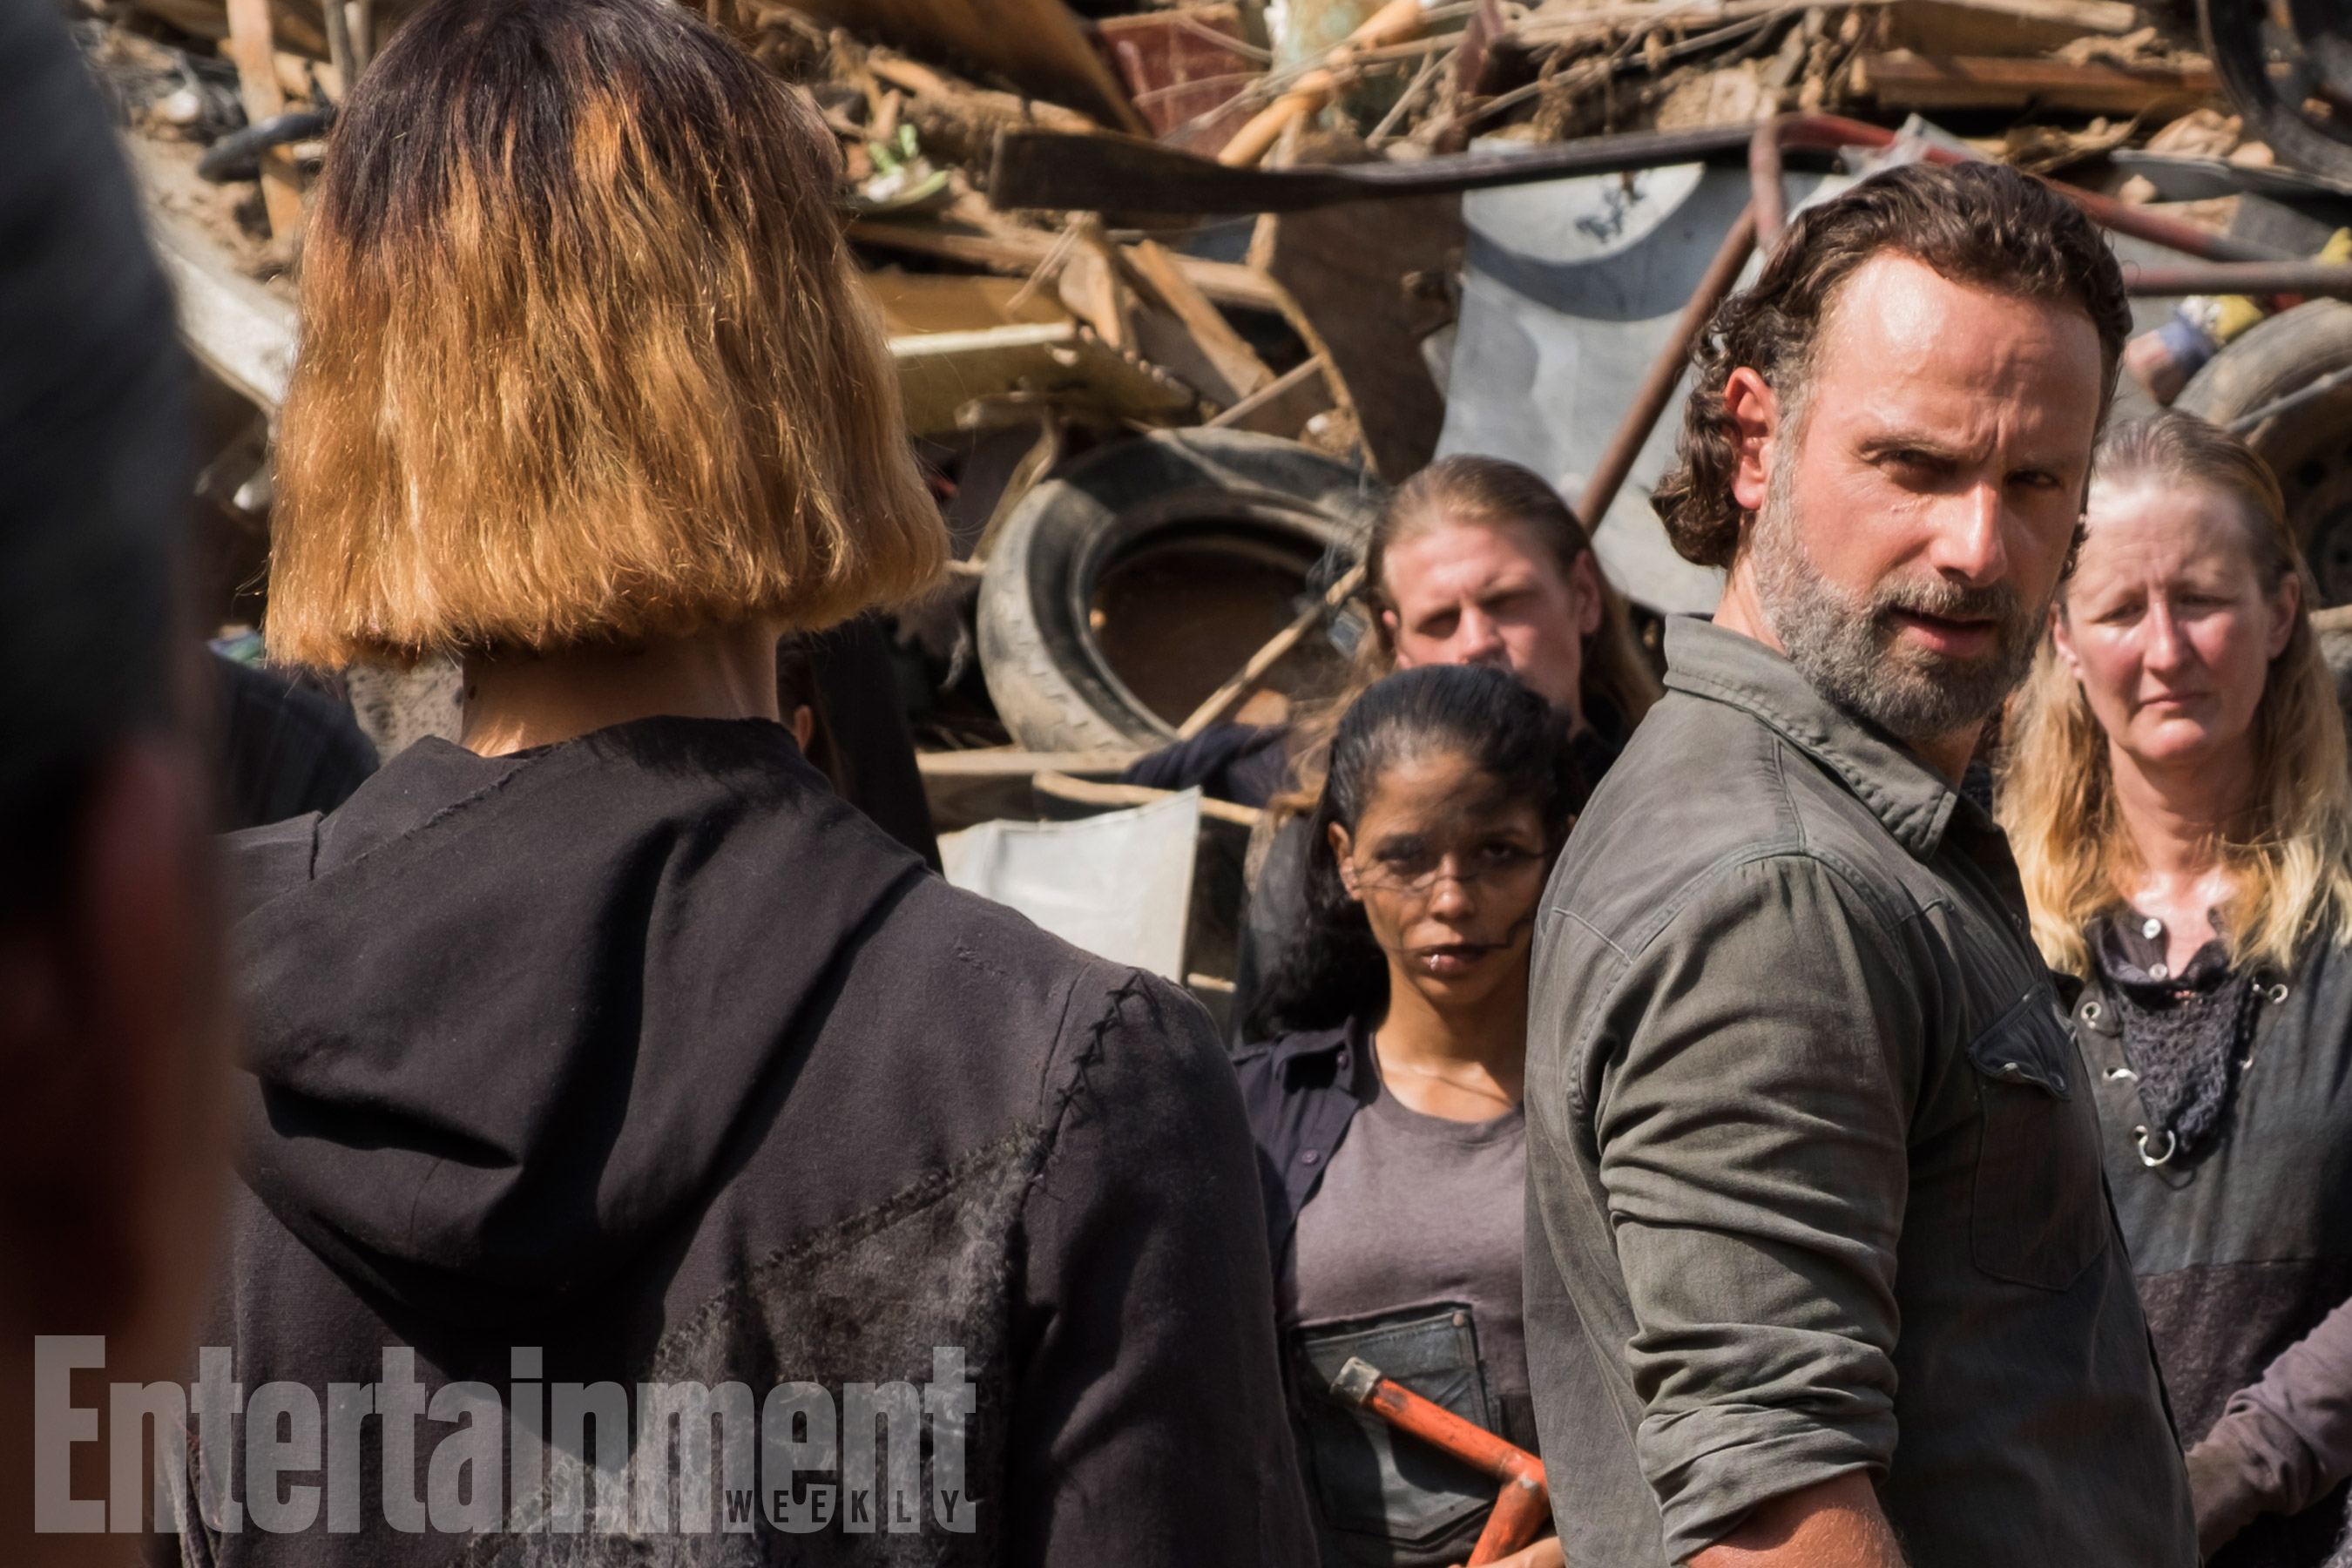 The Walkign Dead (2017) Season 7, Episode 10 Andrew Lincoln as Rick Grimes